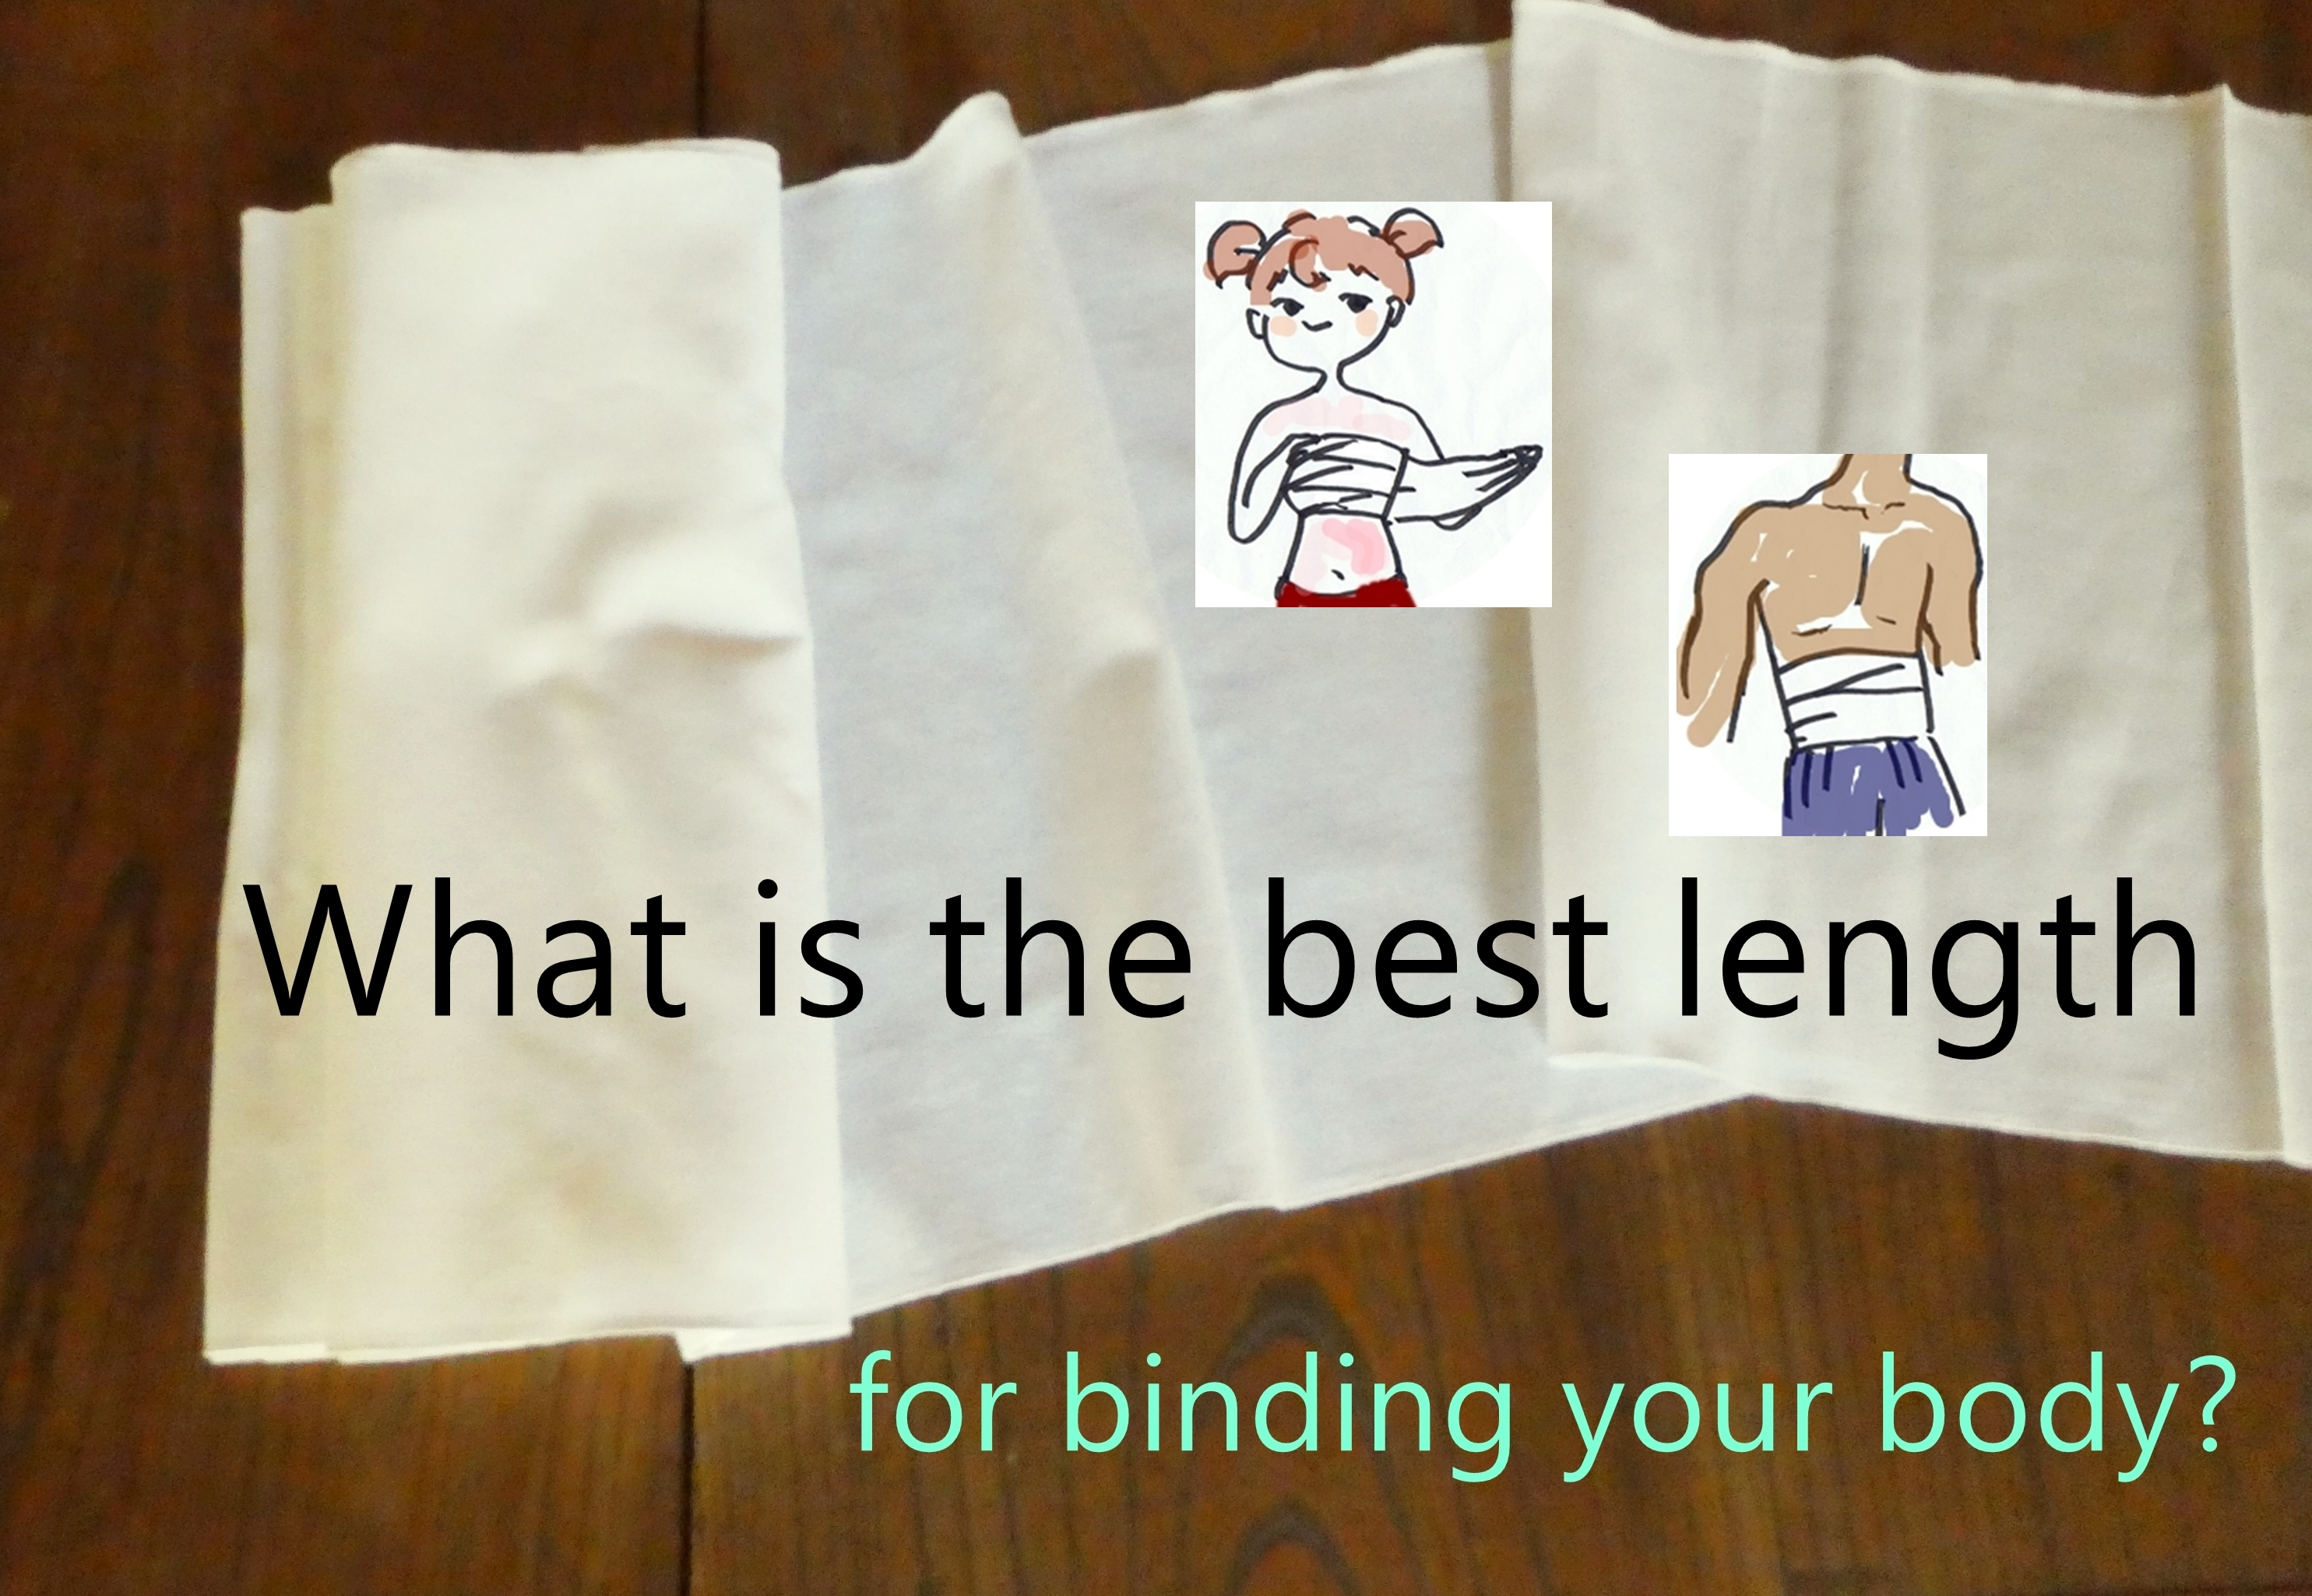 What is the best length binding your body?